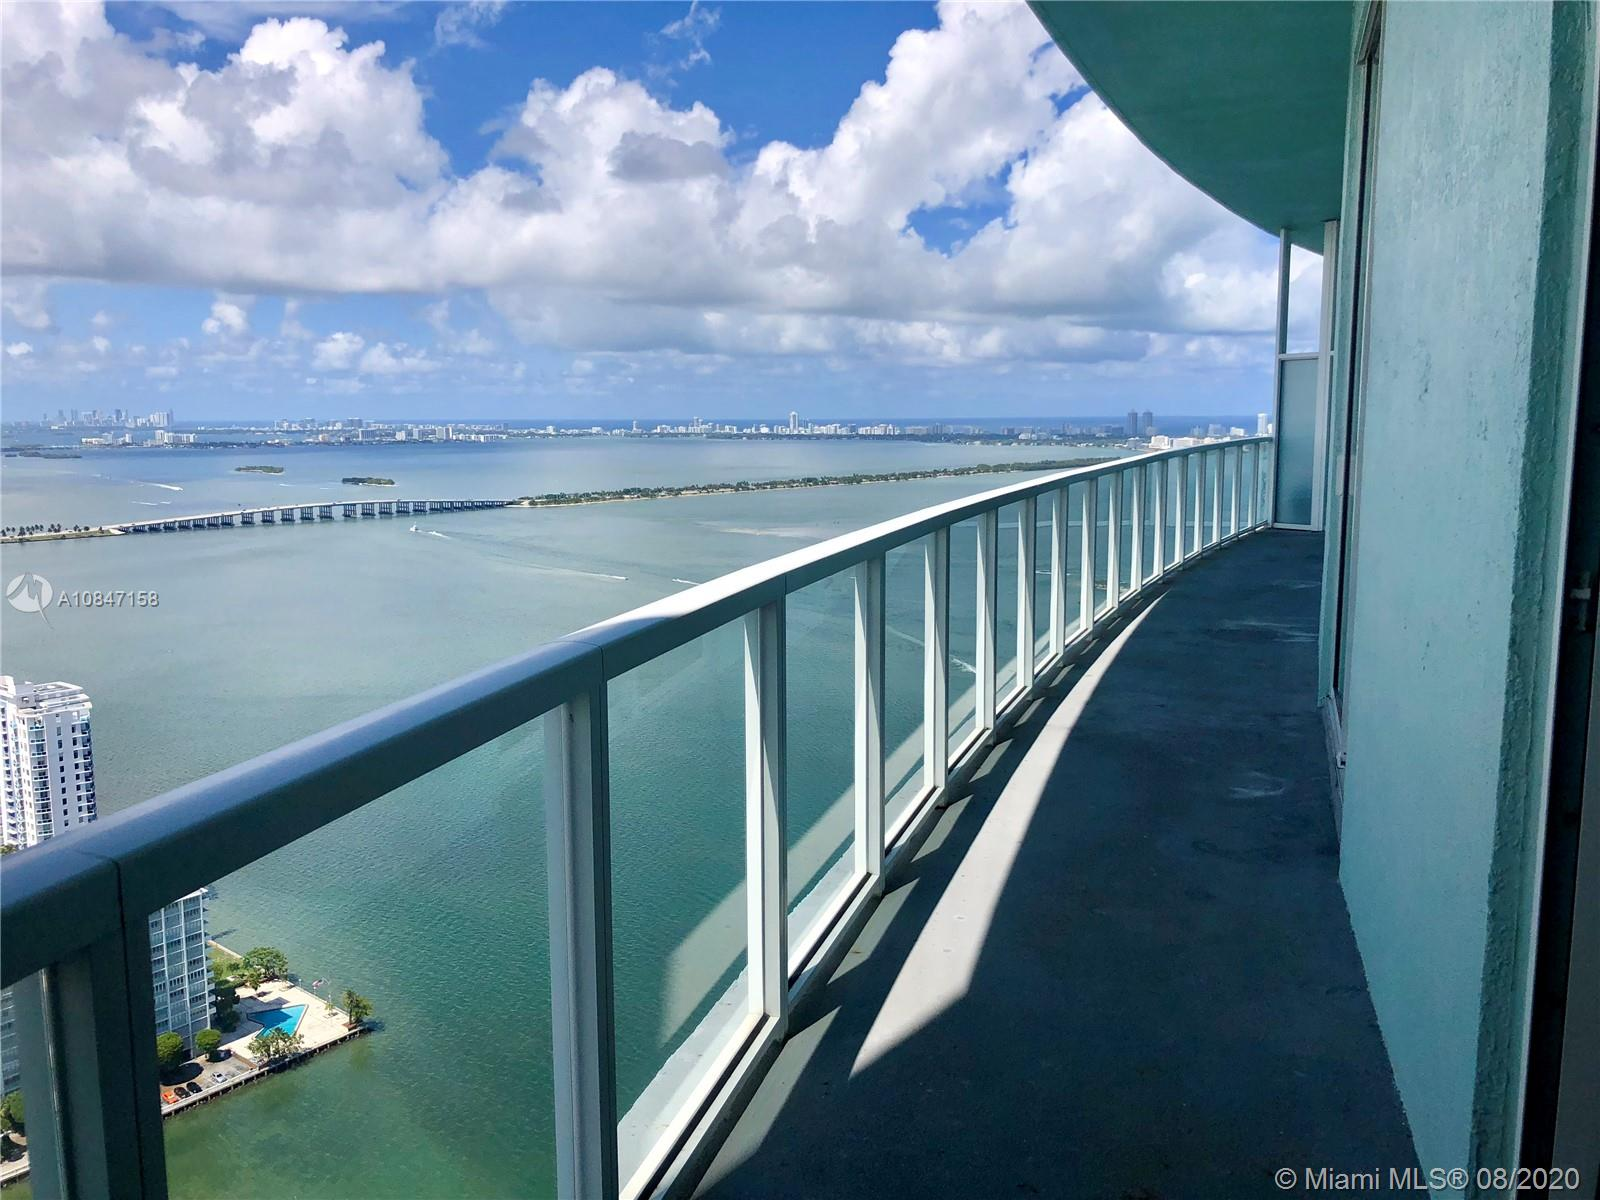 Penthouse Living! Top Floor 3BR + Den/2.5Bth condo with endless views of Biscayne Bay & Miami Beach by day & a stunning city skyline by night. Almost 2000SF plus an additional 270SF terrace. Excellent layout framed by 10 foot+ high ceilings and a deluxe Master Bedroom Suite w/ 3 closets and separate his/her sinks. Additional parking available. High speed Internet, cable & water included.  Quantum on the Bay is a full-service amenity building w/ 24hr security, state-of-the-art Fitness Center, Residents Lounge, Library, Sauna, and 2 Pools, Gourmet market, hair salon and dental practice right on the premises. Enjoy beautiful park grounds across the street and a location that is close proximity to the Design District, the Airport, Midtown & Brickell. Miami is at your fingertips!